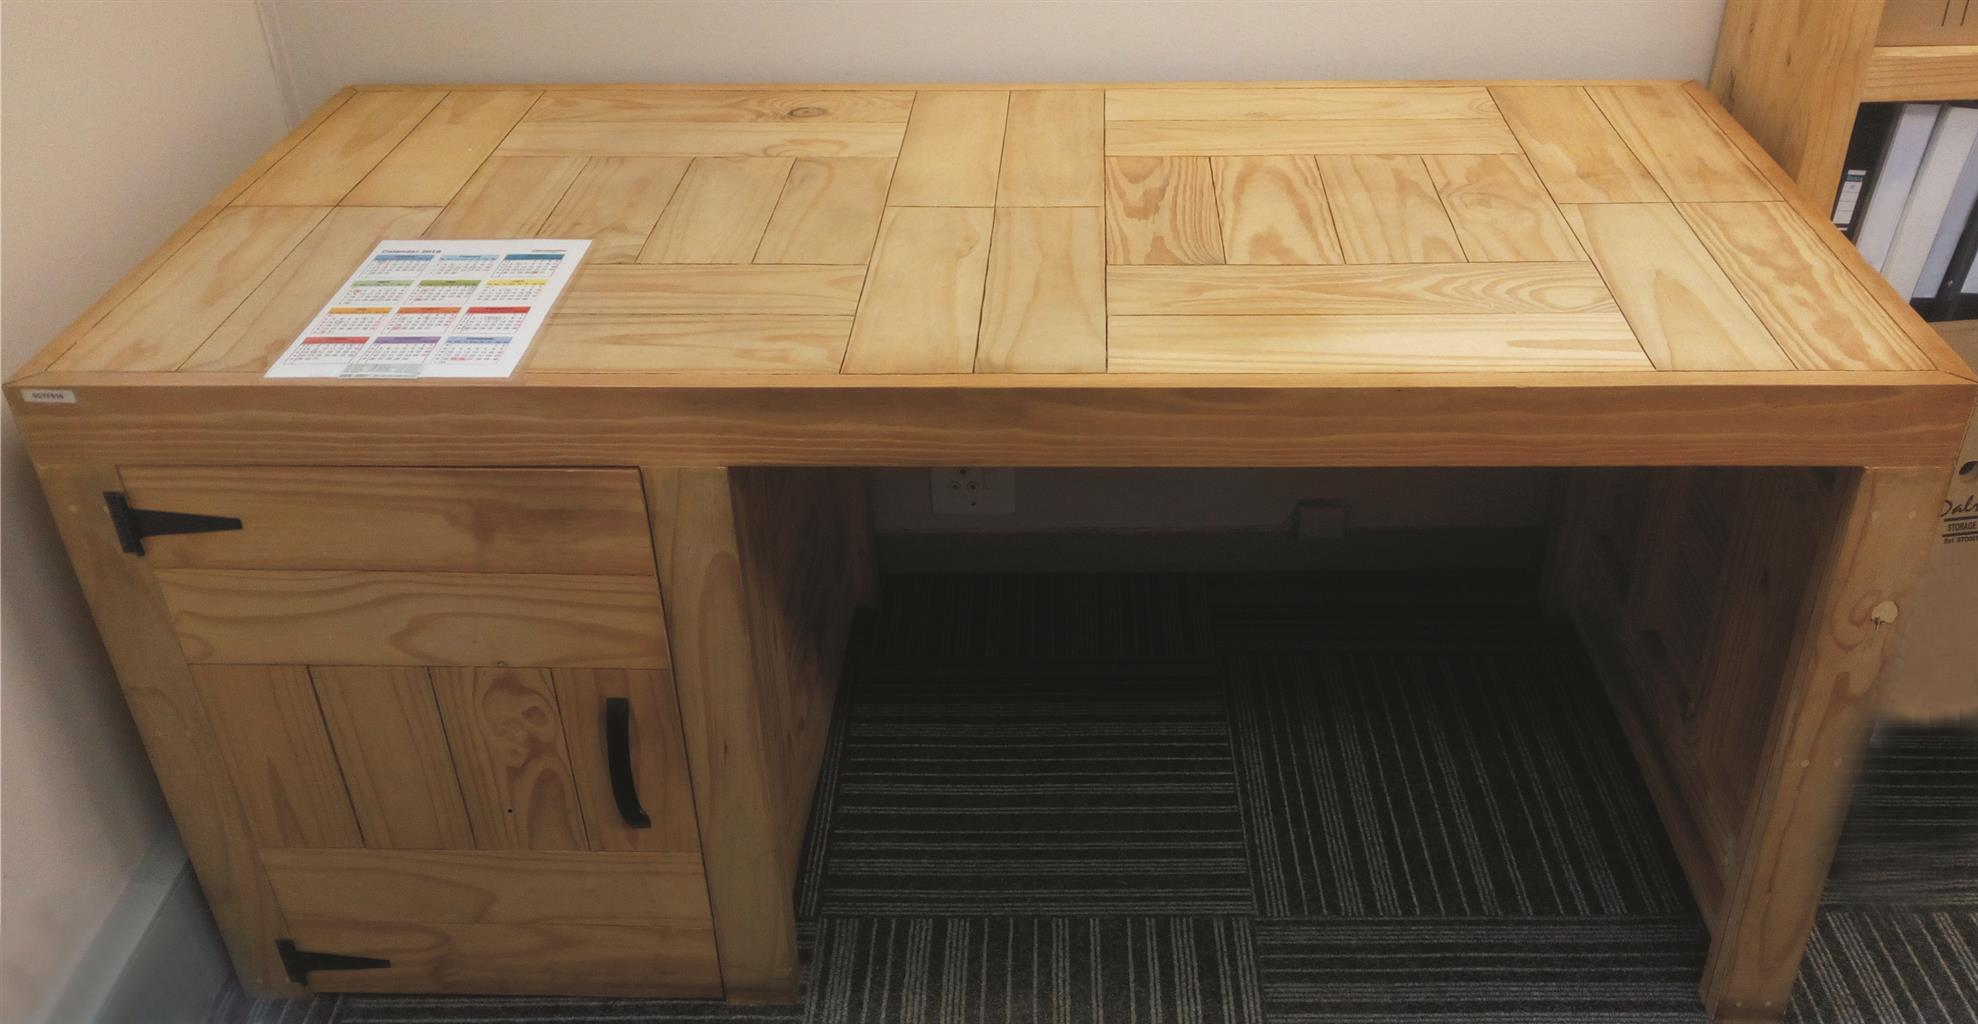 For sale: 2 x Custom-made office/study desks in excellent condition